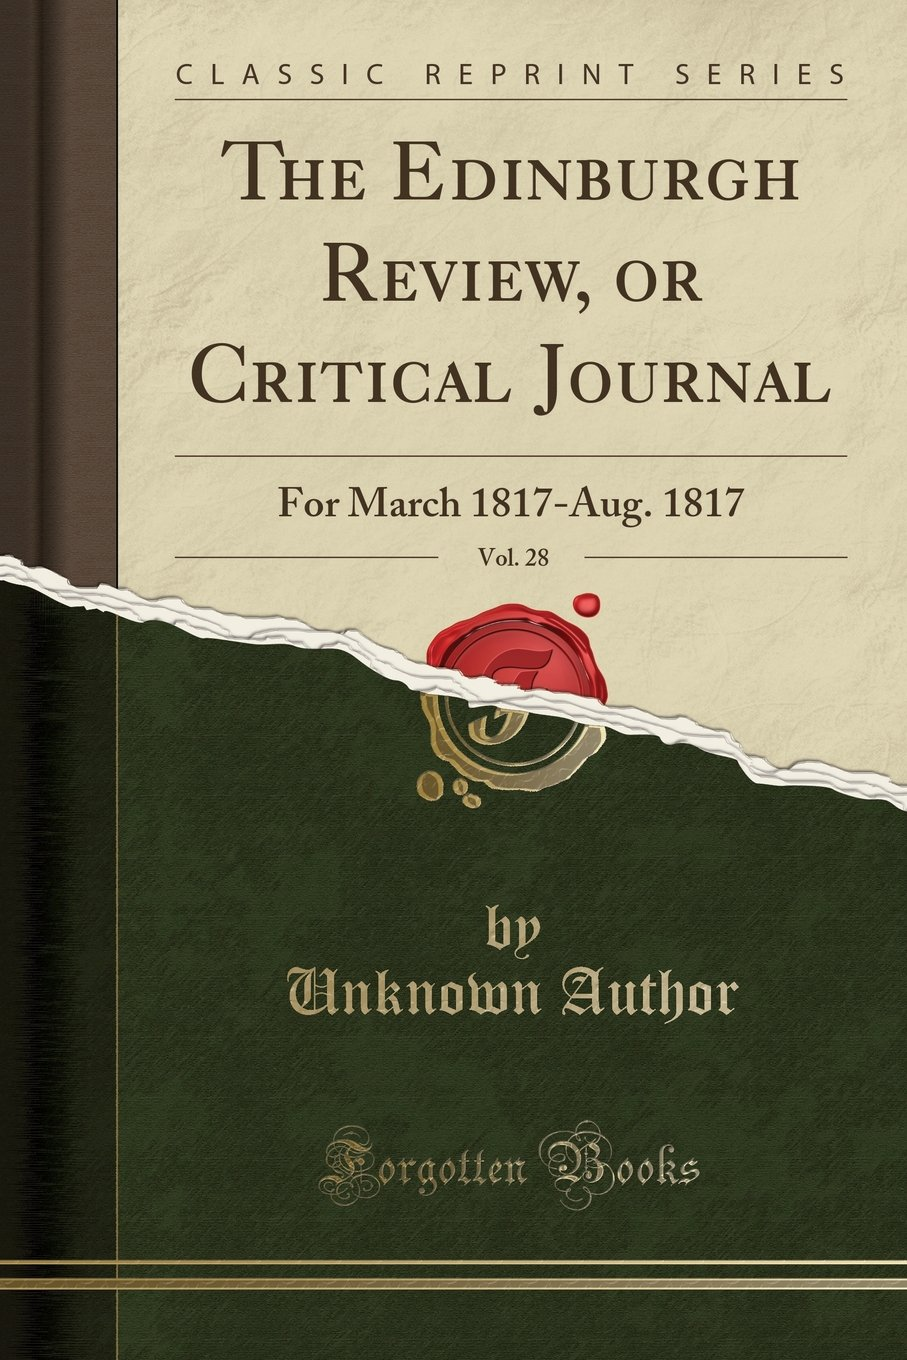 Download The Edinburgh Review, or Critical Journal, Vol. 28: For March 1817-Aug. 1817 (Classic Reprint) pdf